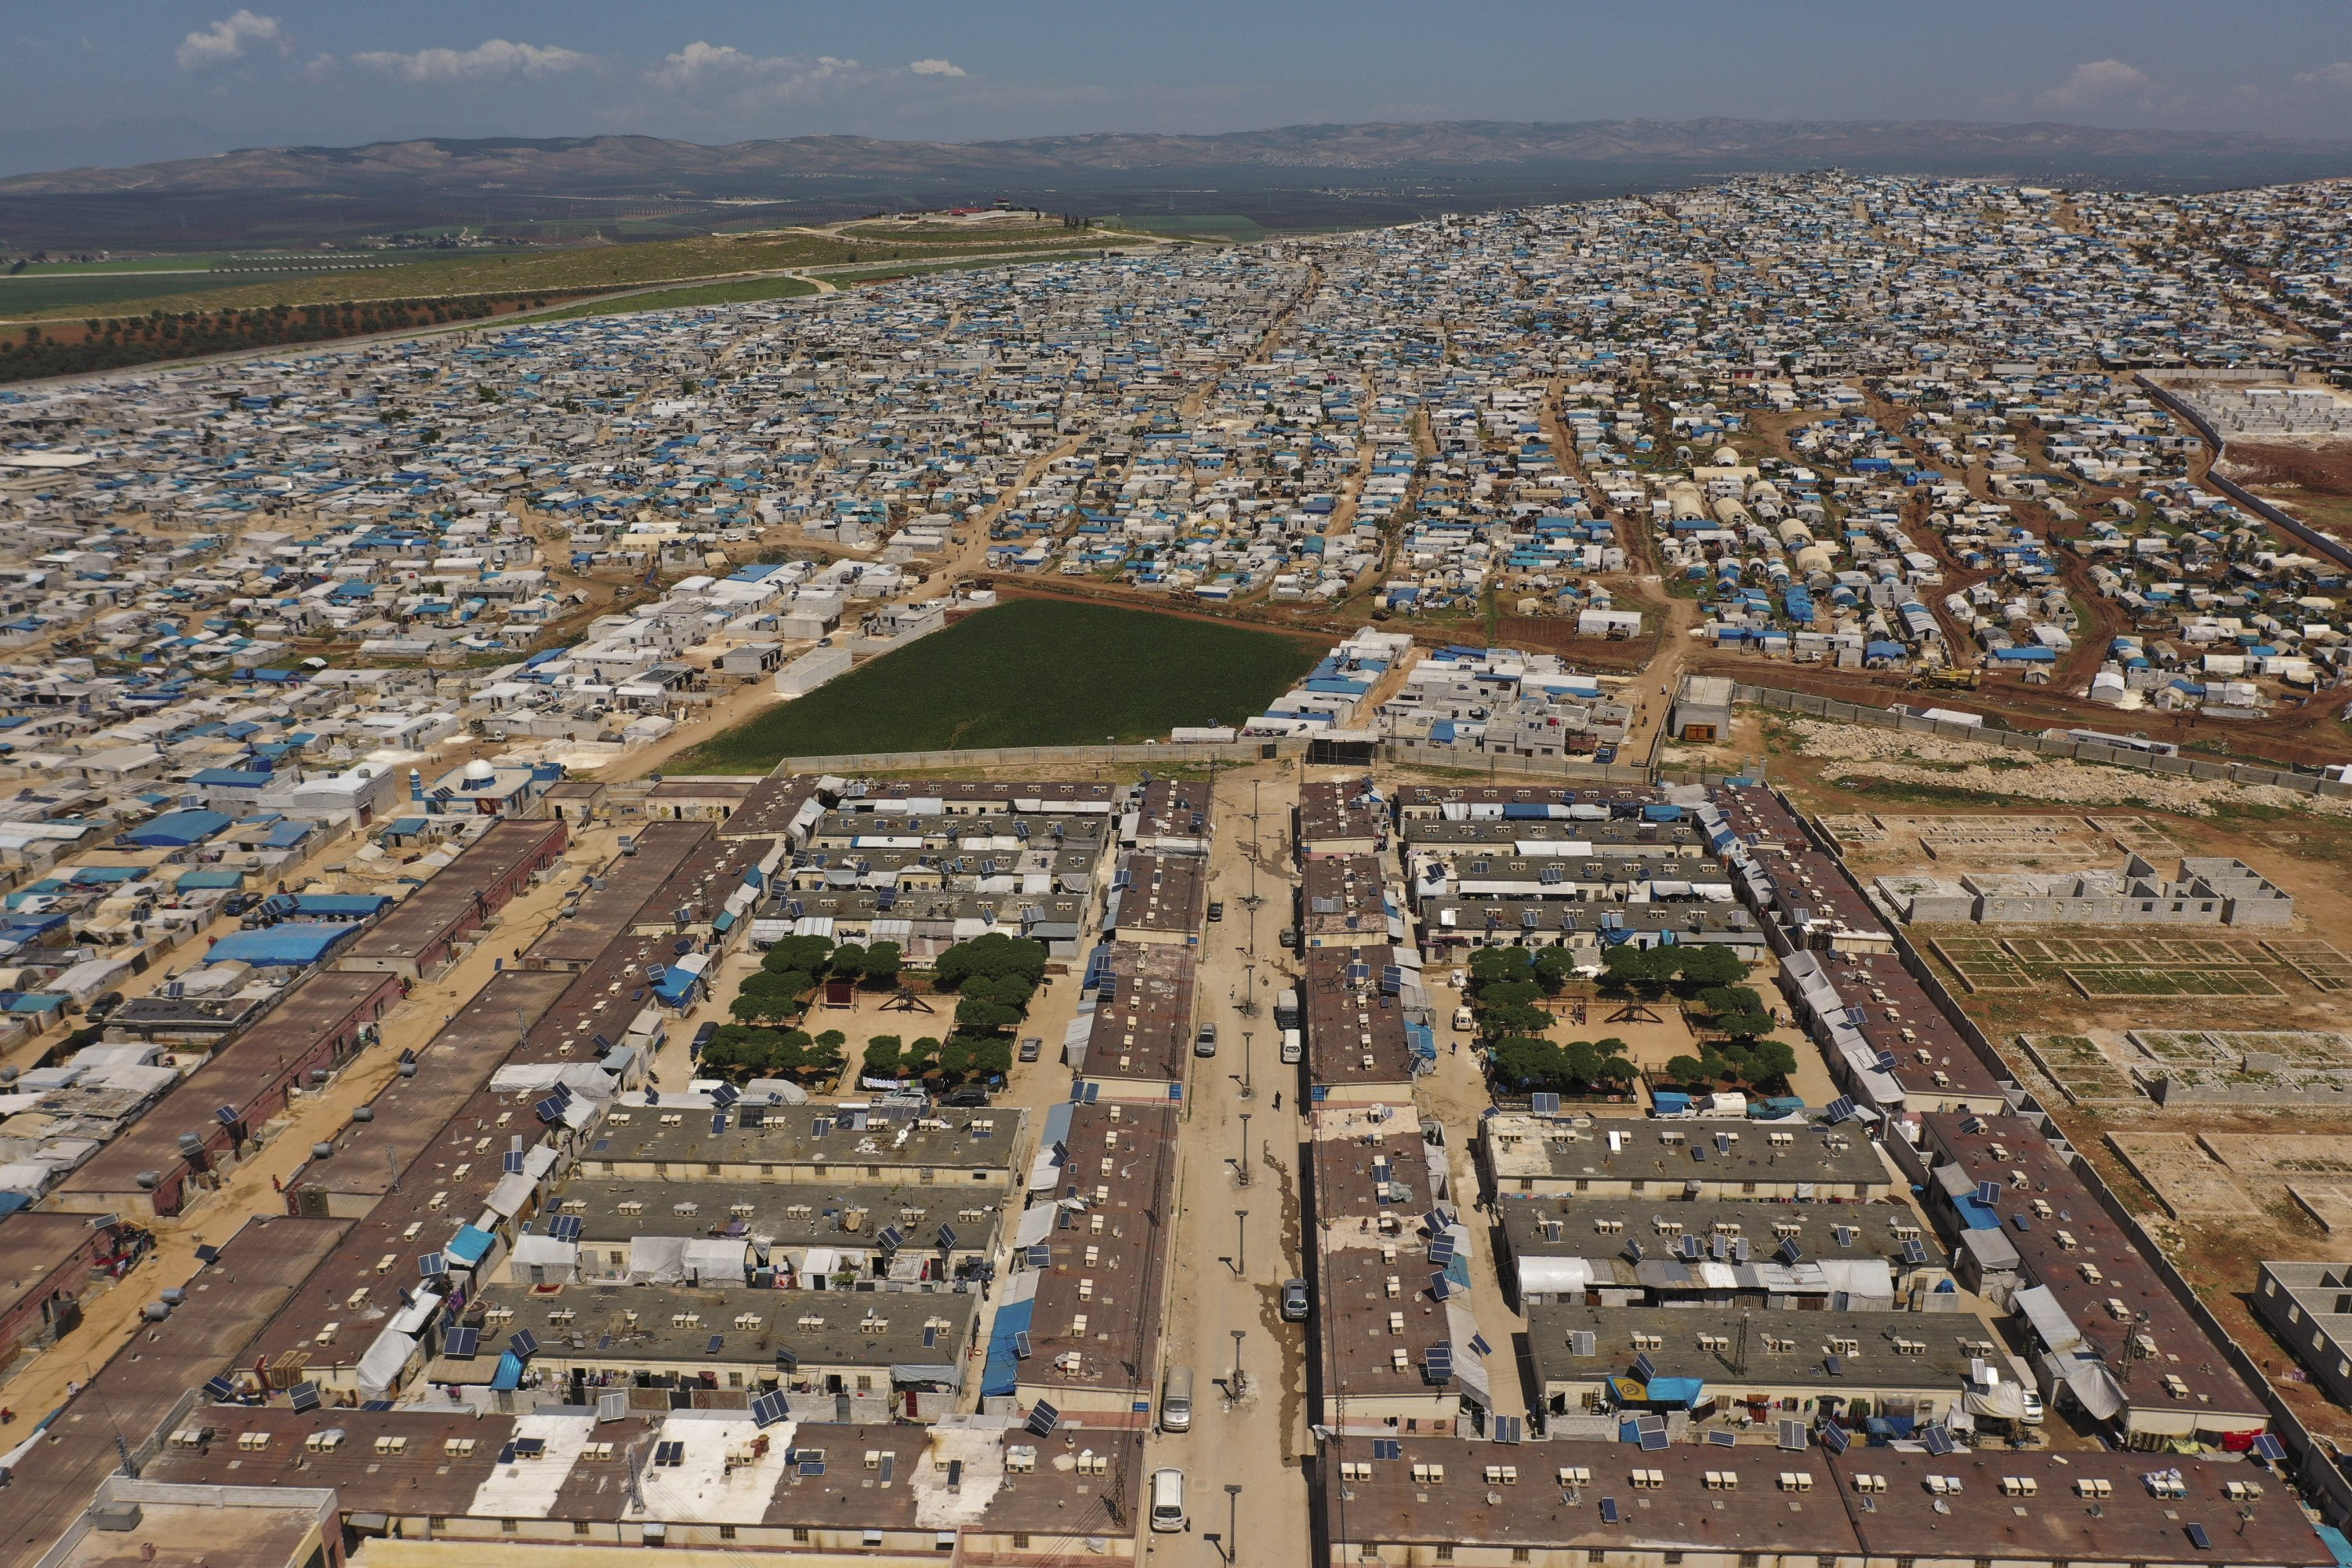 A large refugee camp on the Syrian side of the border with Turkey, near the town of Atma, in Idlib province, Syria, April 19, 2020. (AP)